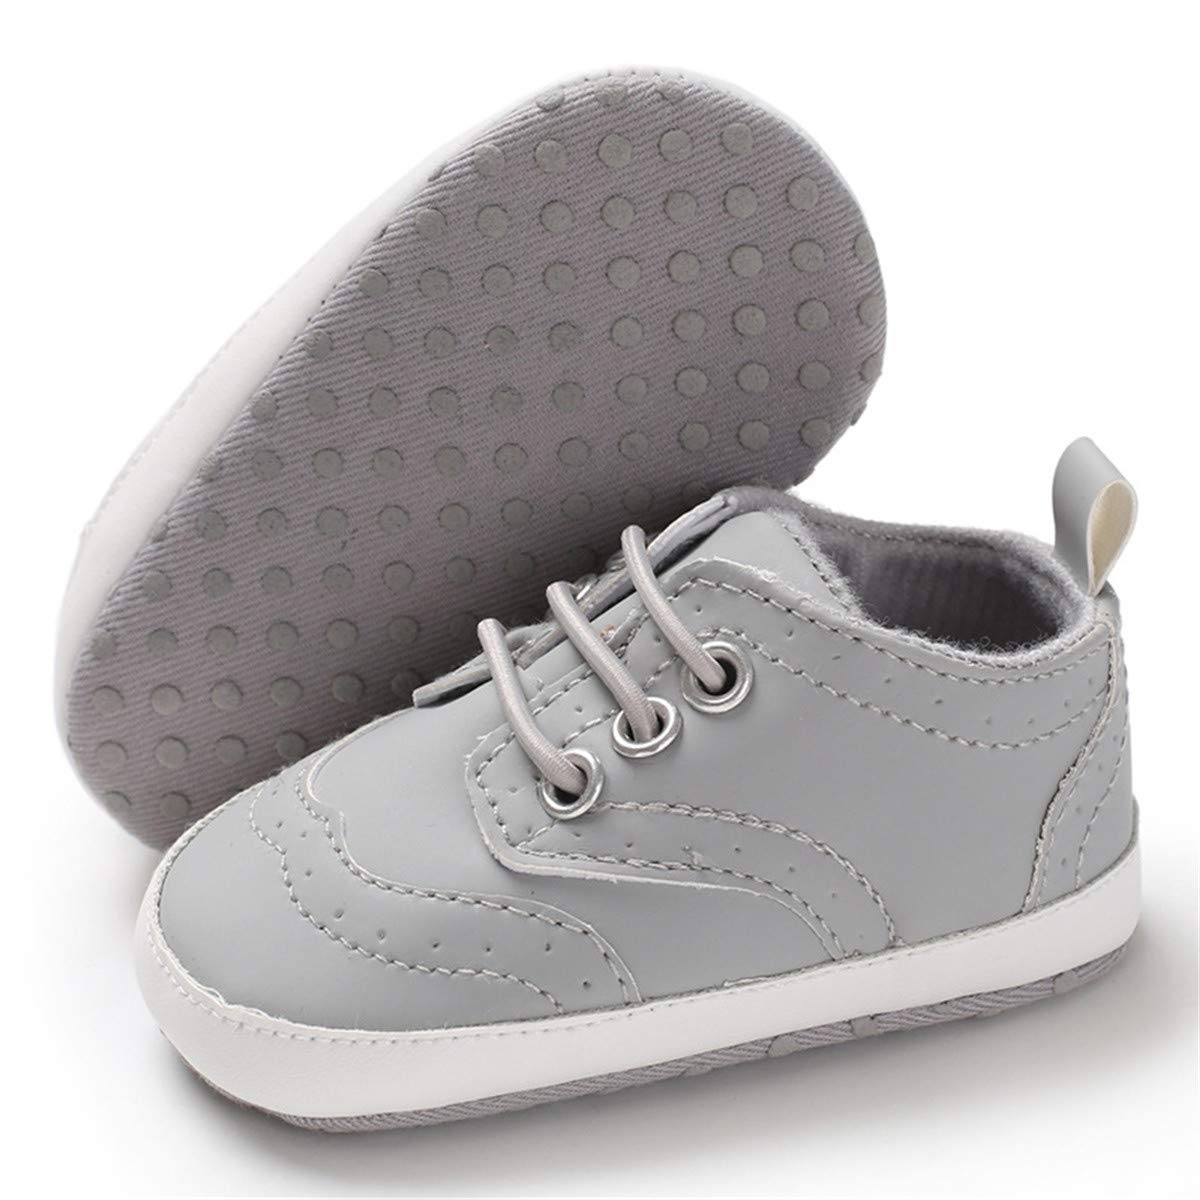 BENHERO Baby Boys Girls Oxford Shoes Soft Sole PU Leather Moccasins Infant Toddler First Walkers Crib Dress Shoes Sneaker